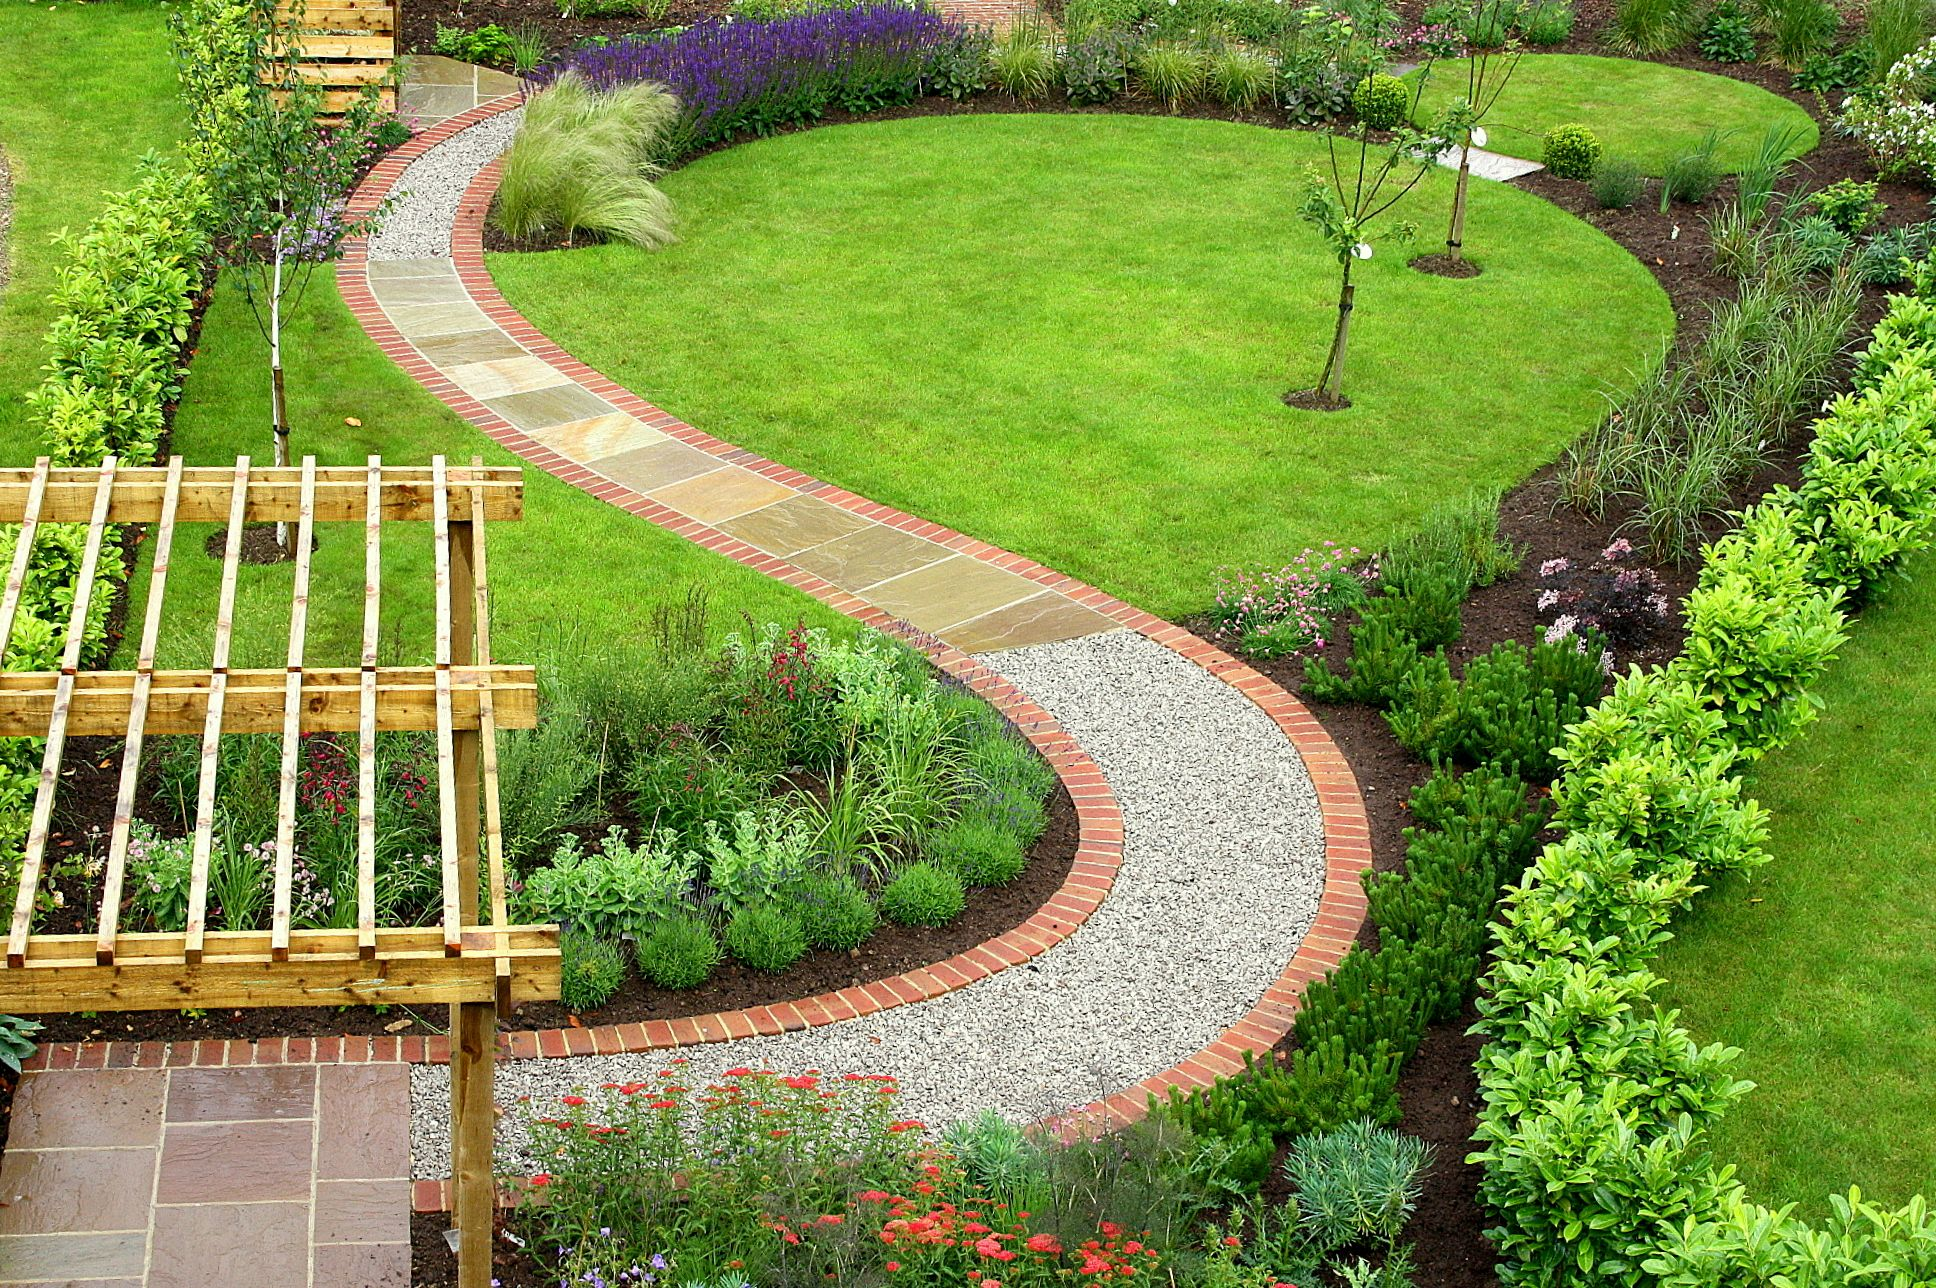 1000 images about garden design round beds on pinterest lawn flower beds and small garden design